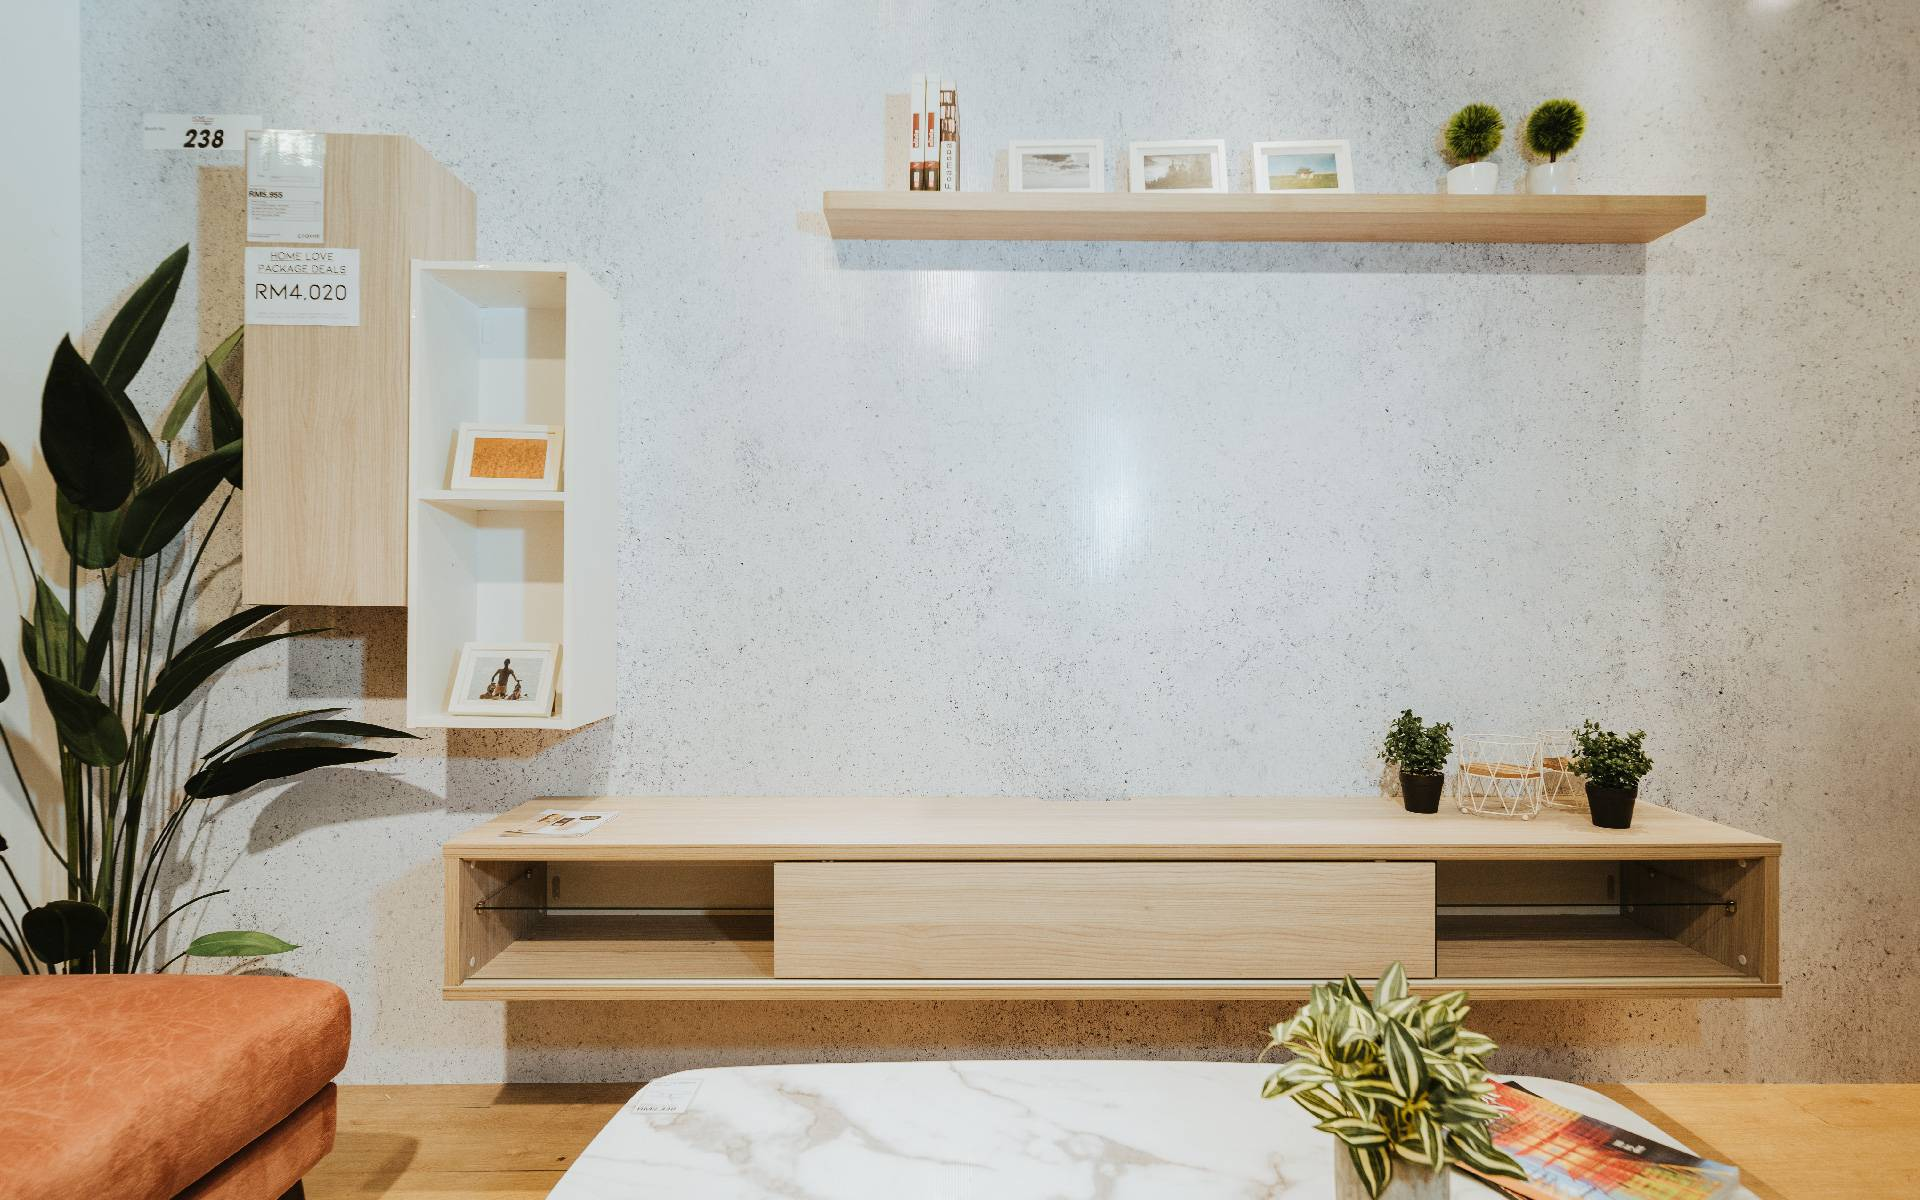 CREATIVE AND INNOVATIVE FURNITURE FOR YOUR HOME